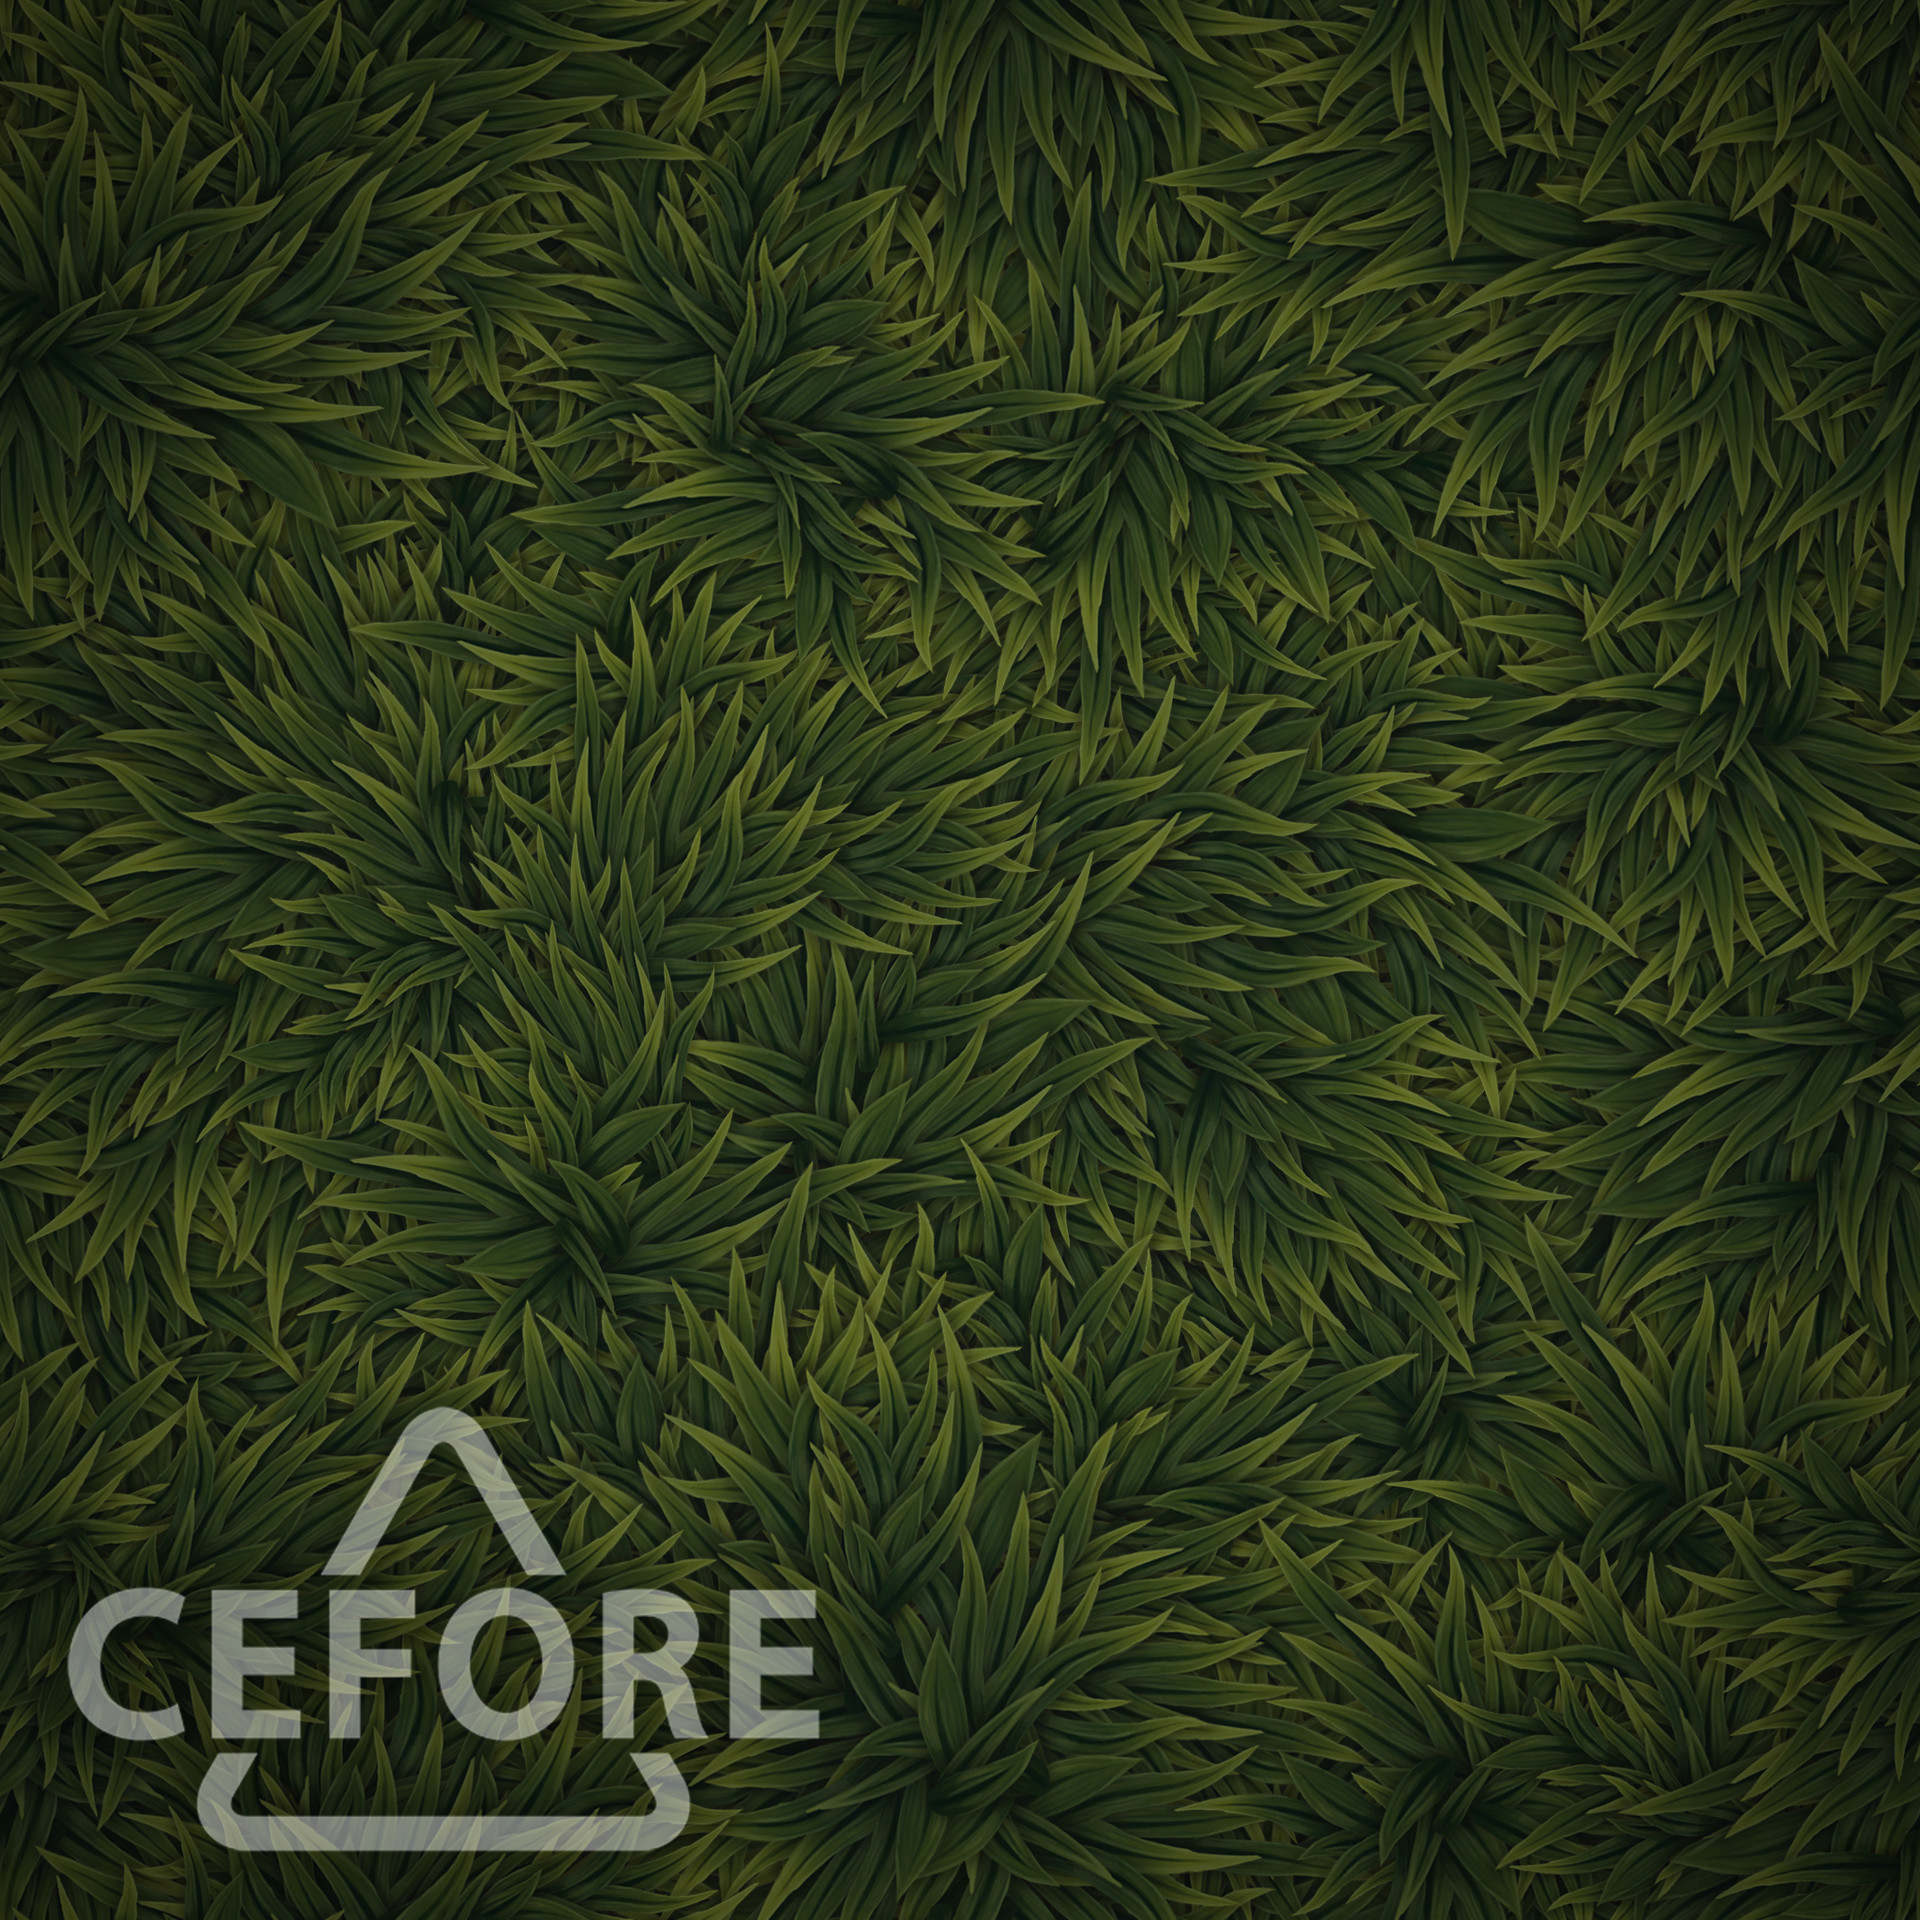 ArtStation Handpainted Grass Tileable Texture Tutorial Louis